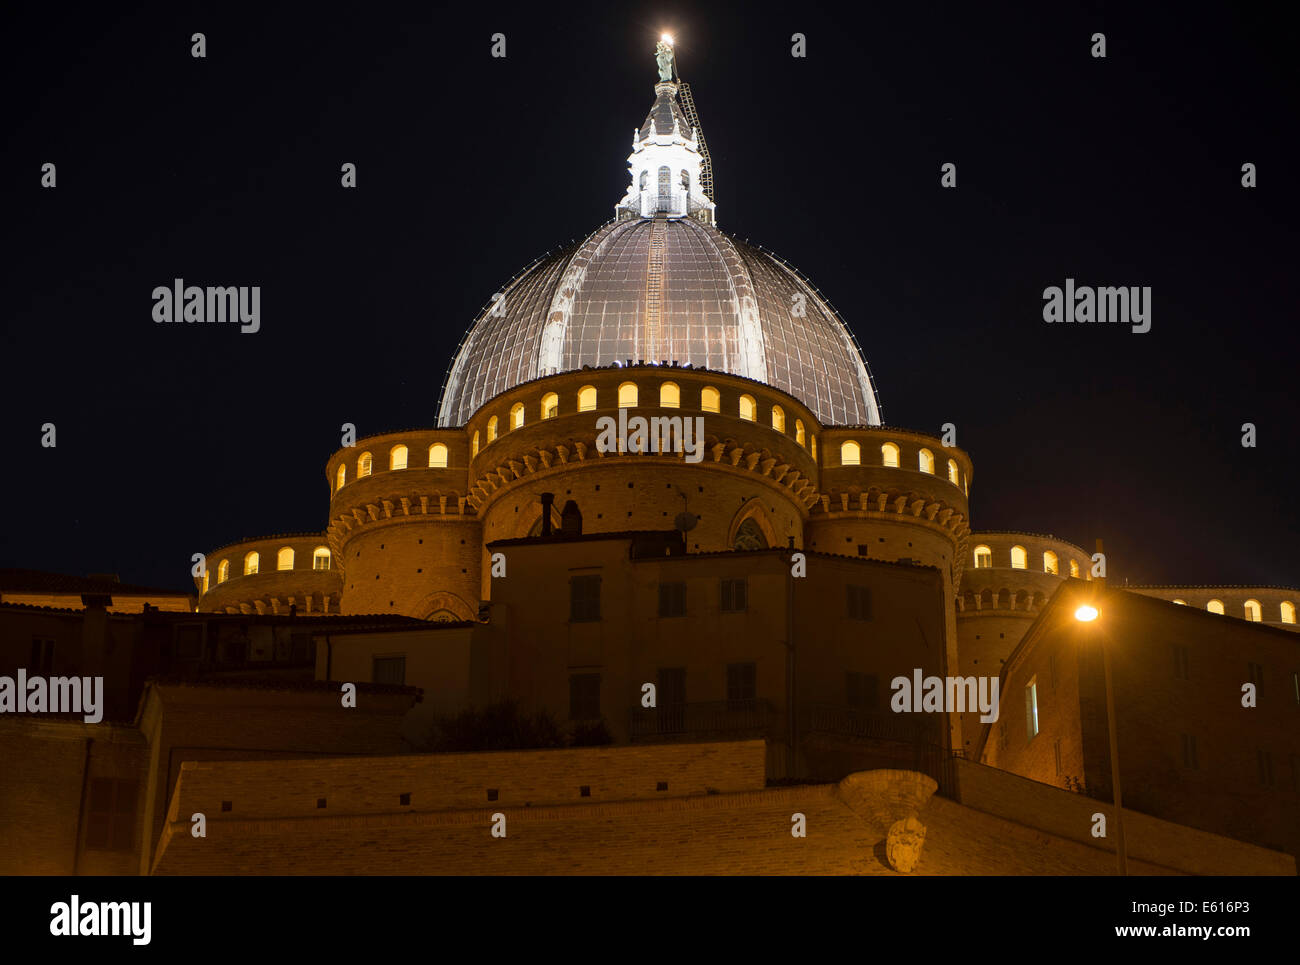 The Dome of the Holy House of Loreto by night, Loreto, Marche, Italy - Stock Image